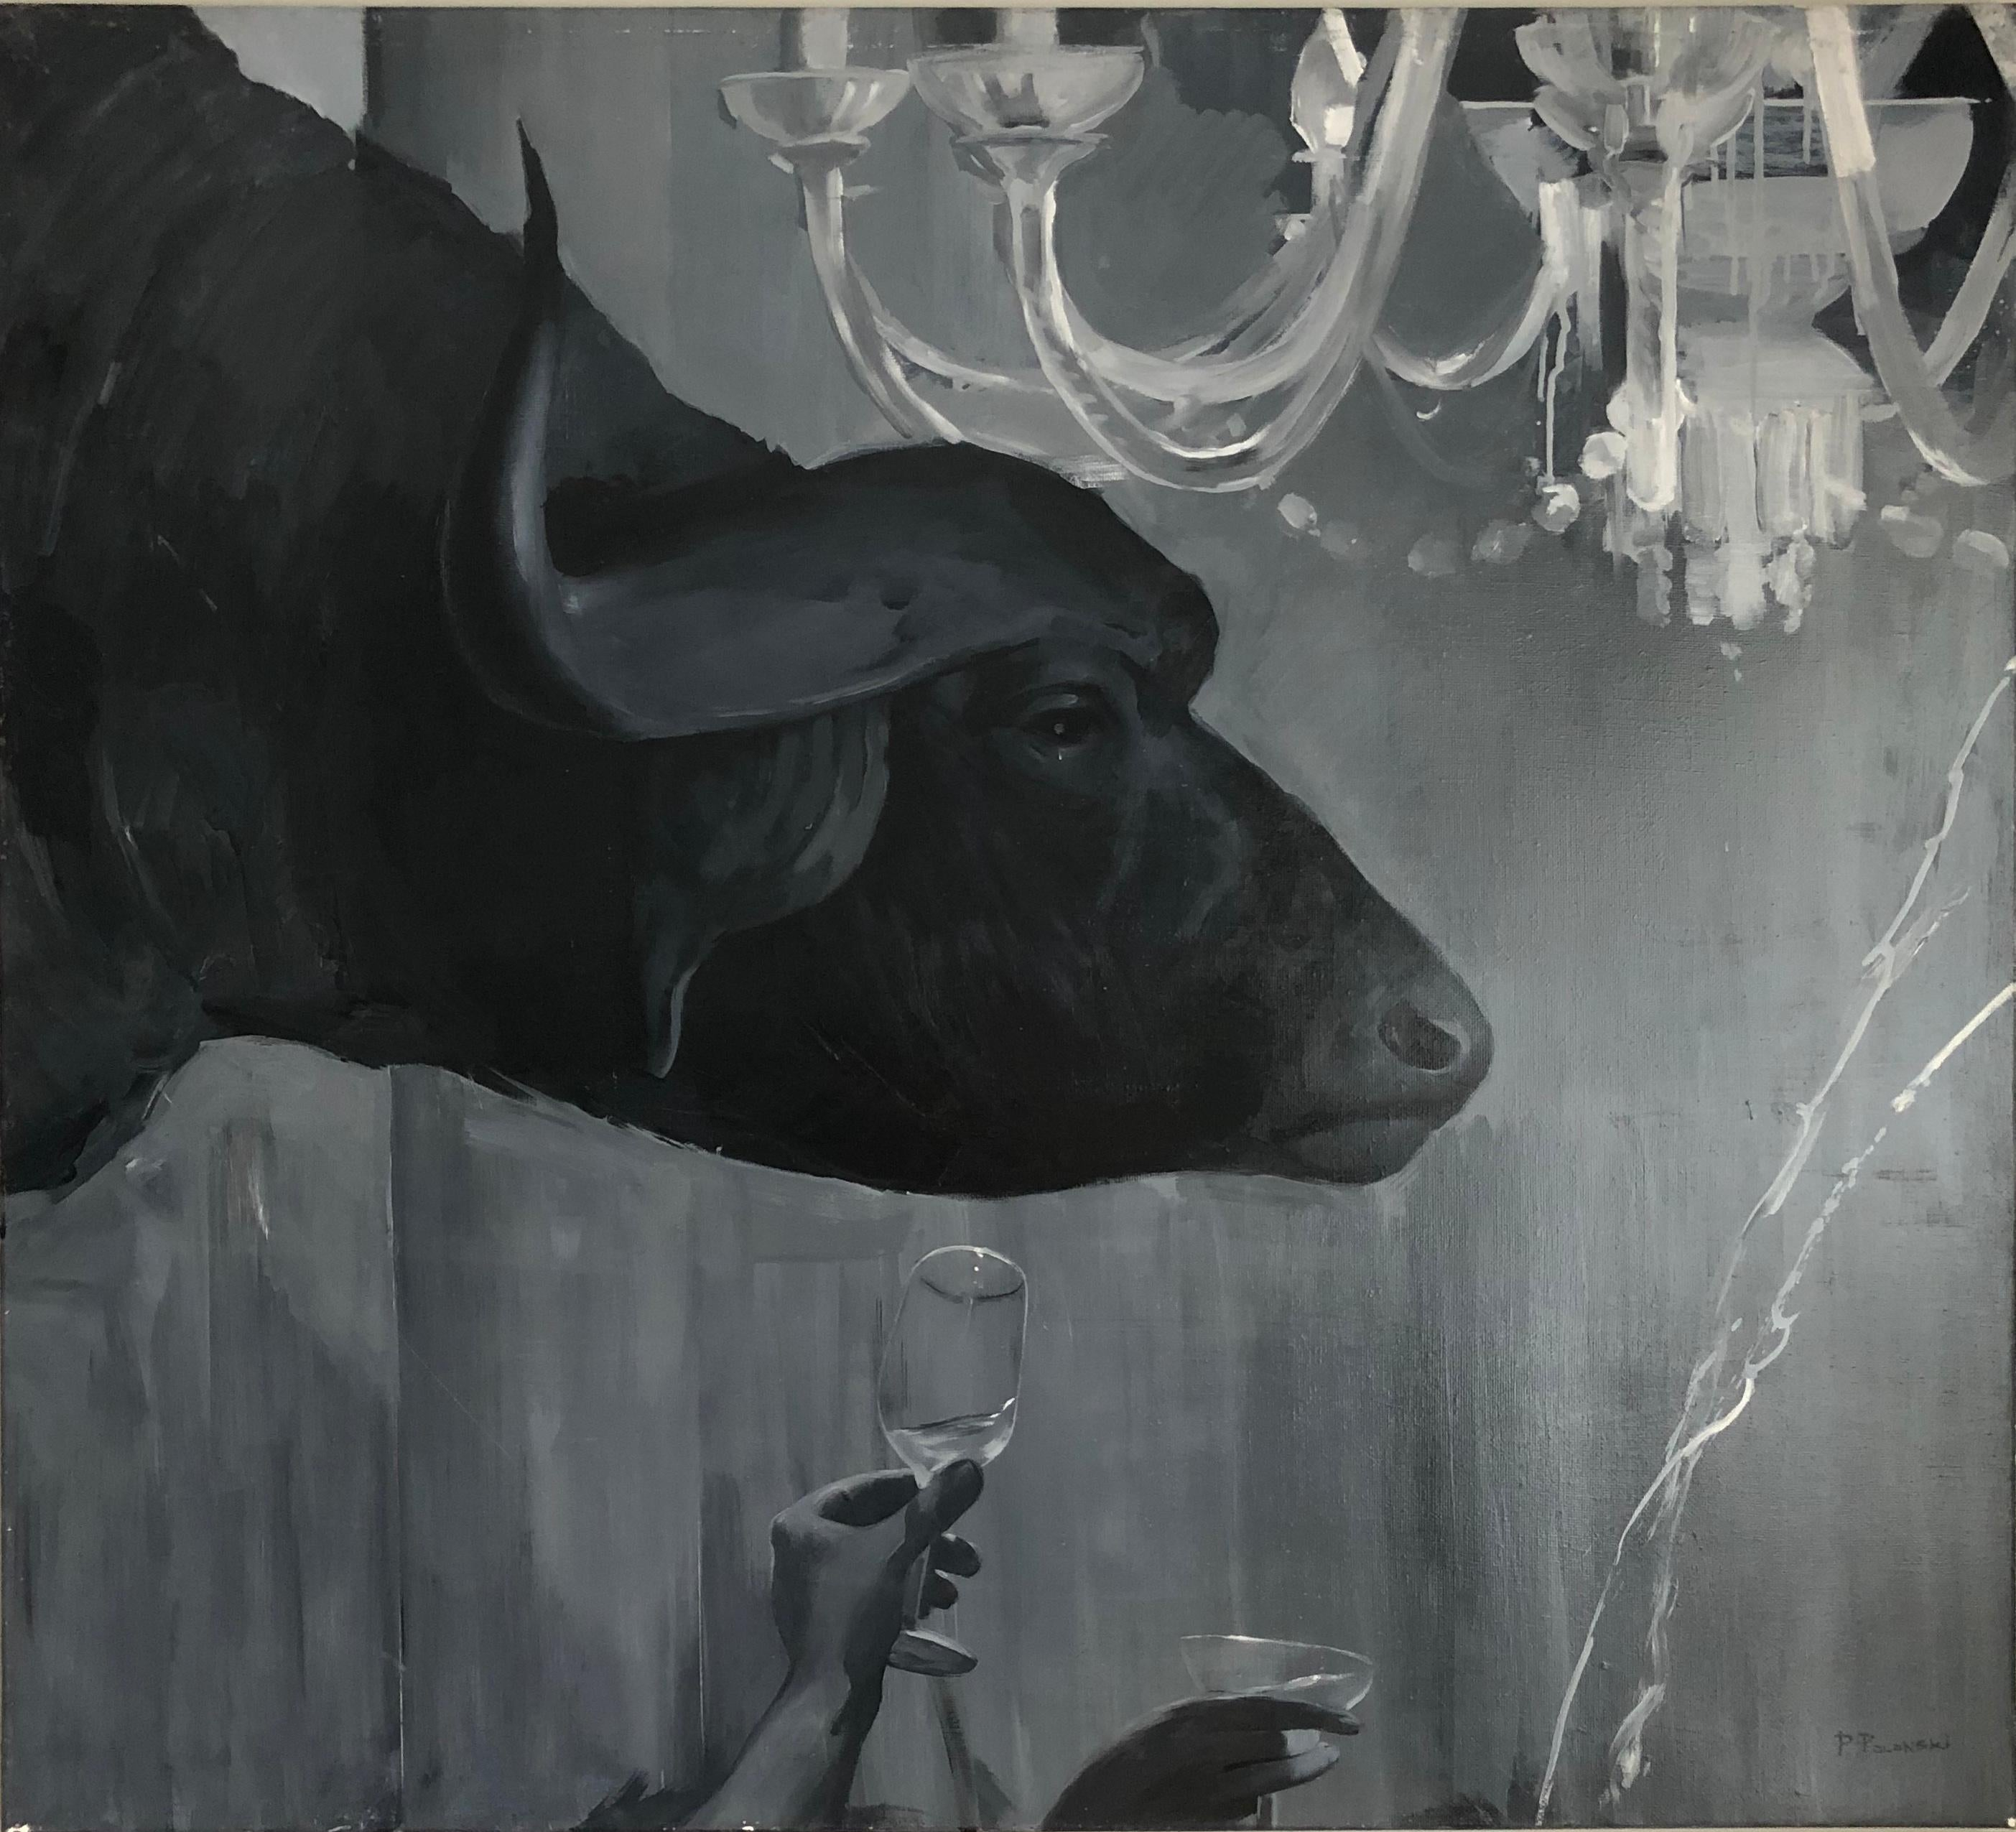 Abduction of Europe-interior art made in grey, black and white, grey color